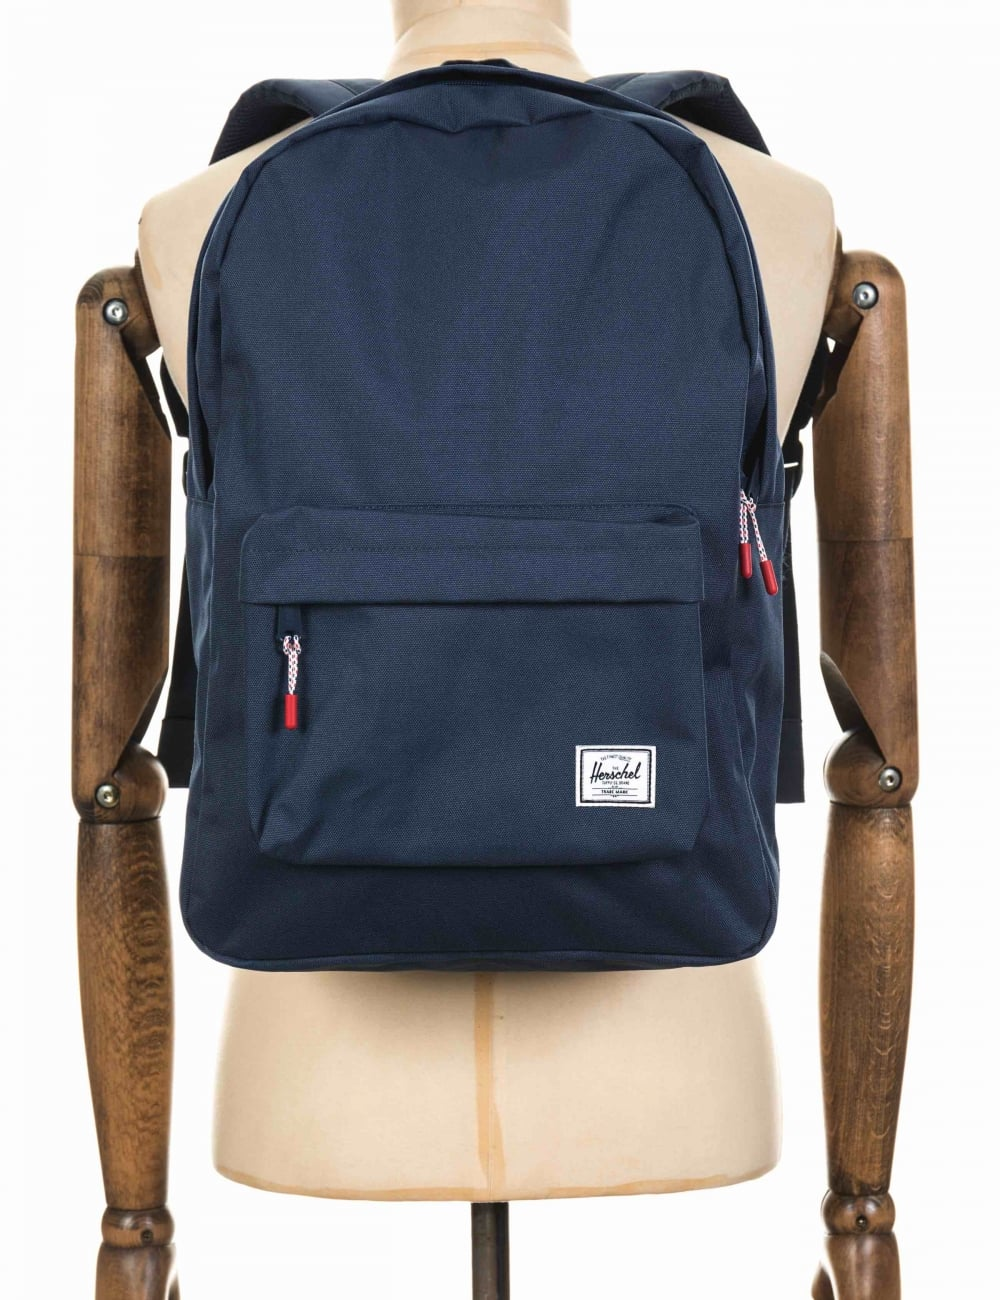 7919ca34e2 Herschel Supply Co Classic 22L Backpack - Navy - Accessories from ...